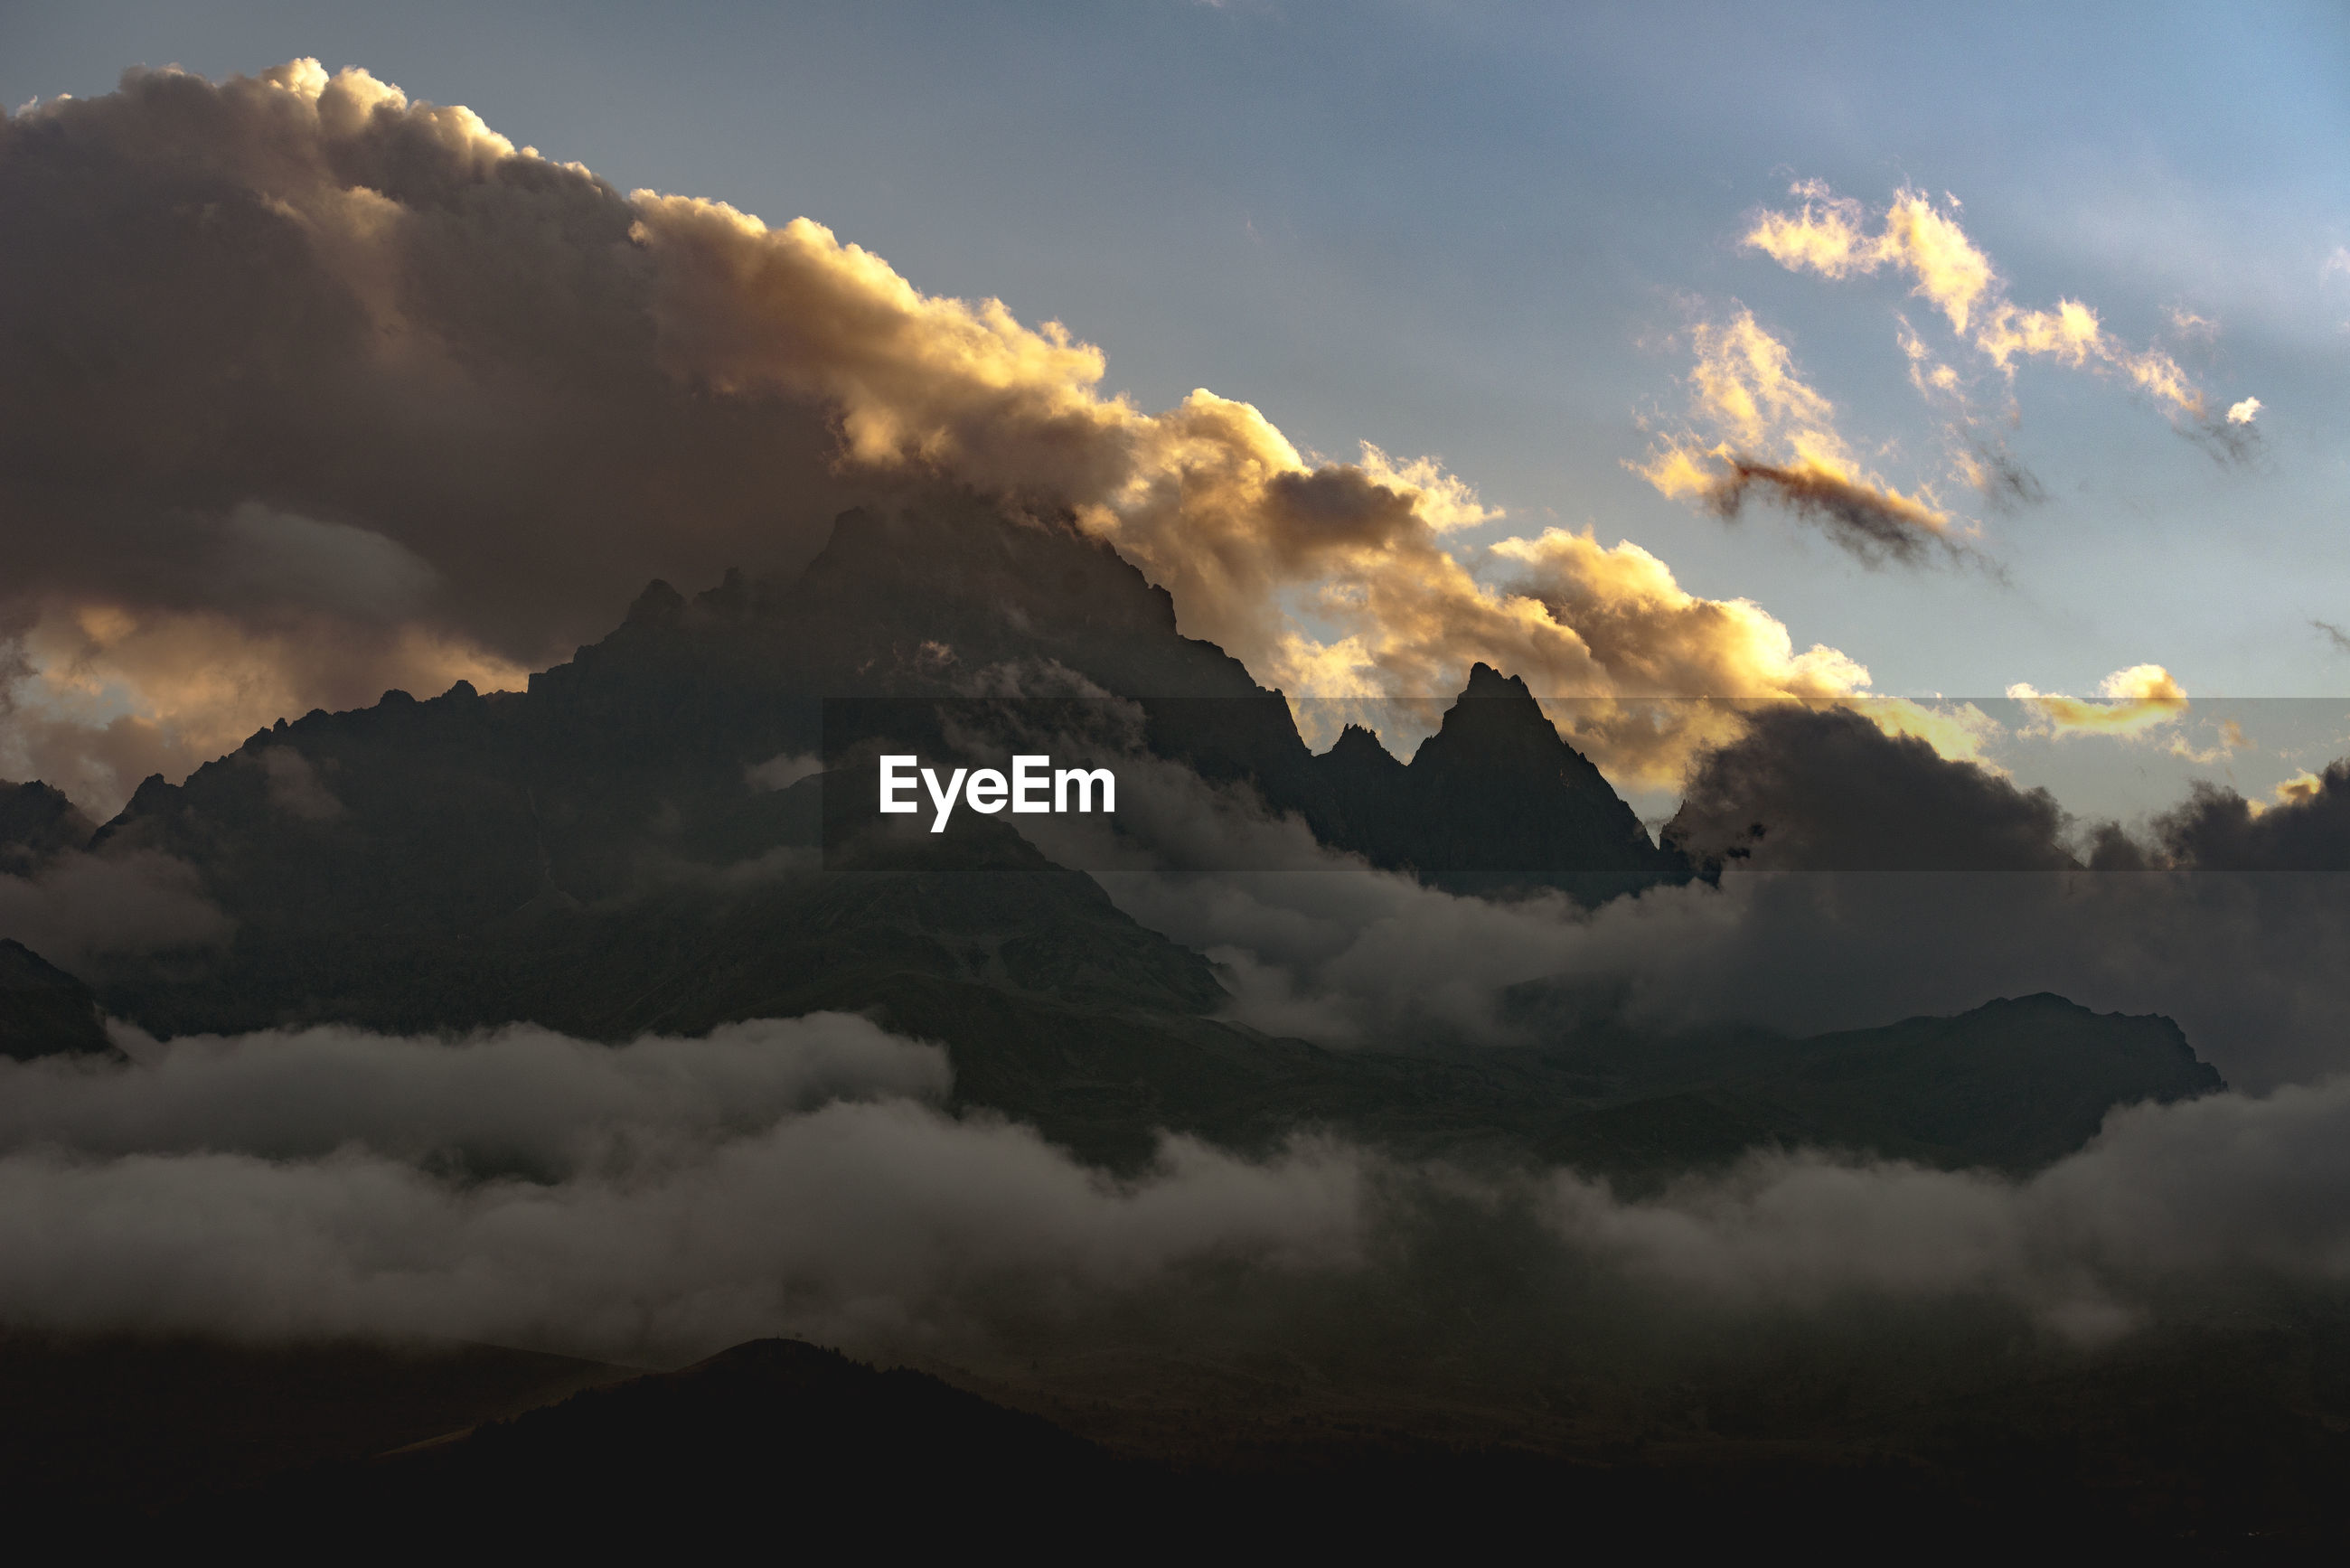 Low angle view of silhouette mountain against sky